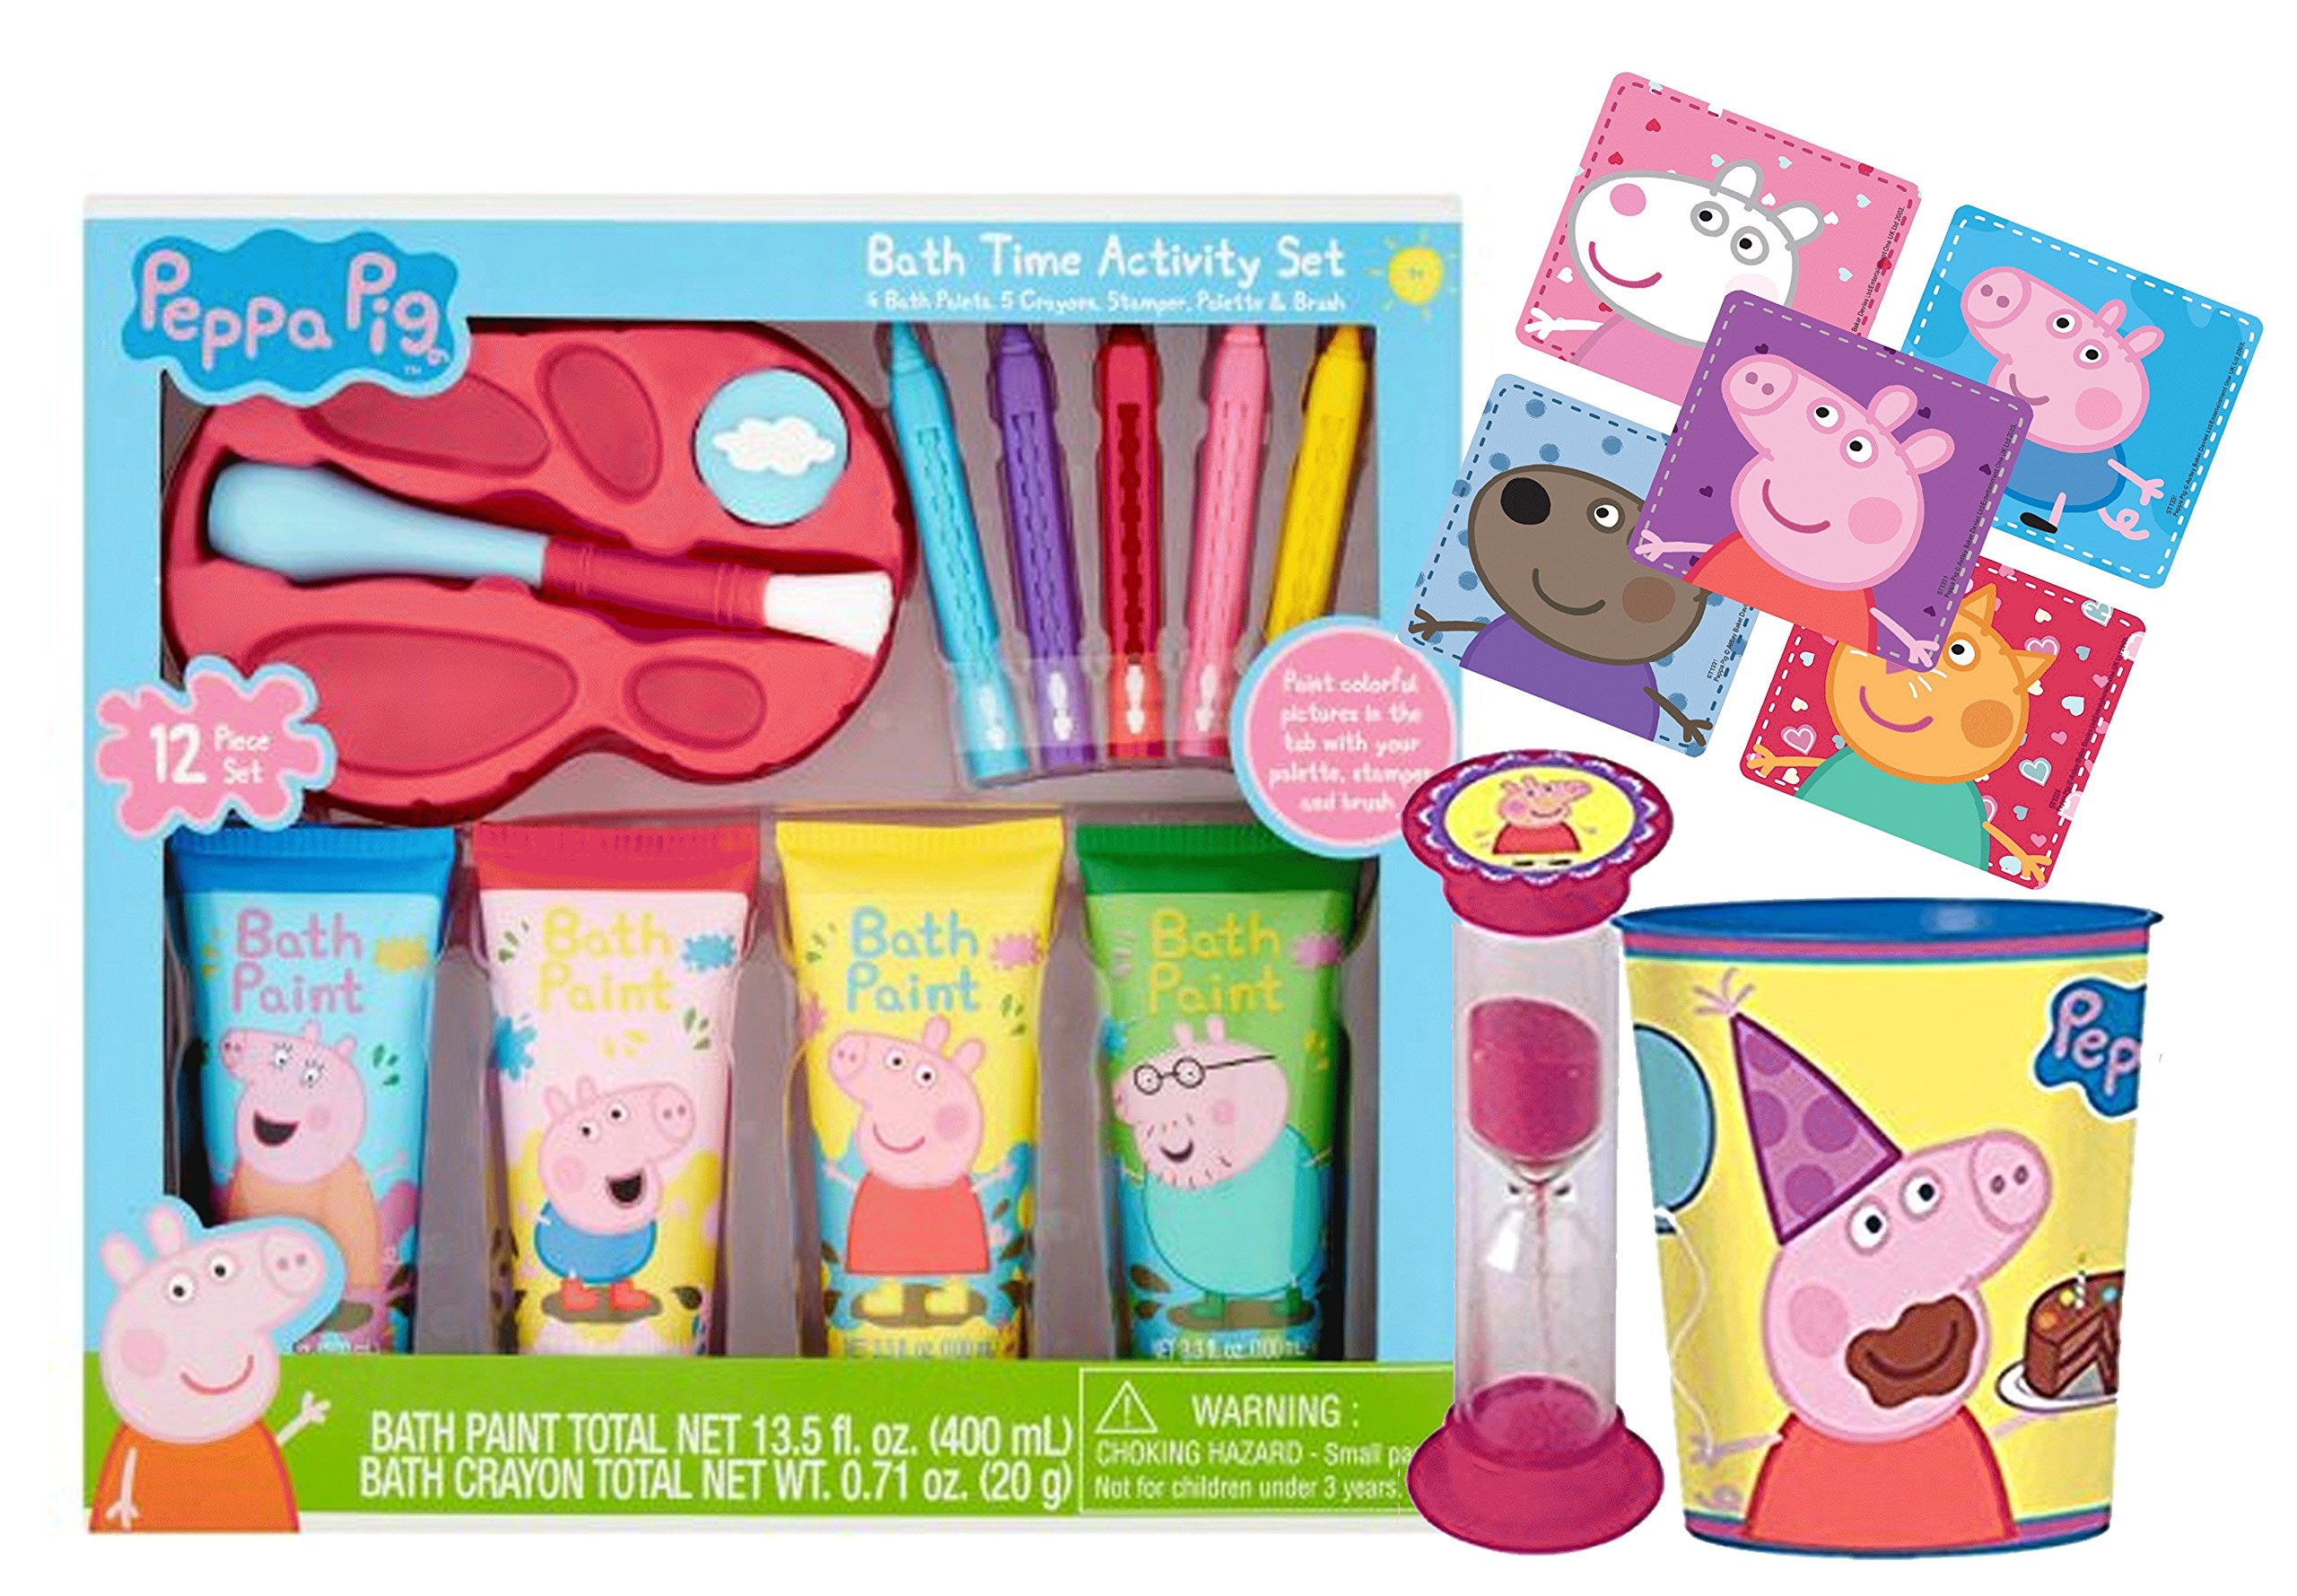 Peppa Pig 12pc Bath Time Activity Paint Gift Set, Bath Scrubby, Rinse Cup & ''Time To Get Out'' Bath Timer! Plus Bonus Peppa Pig Character Stickers!